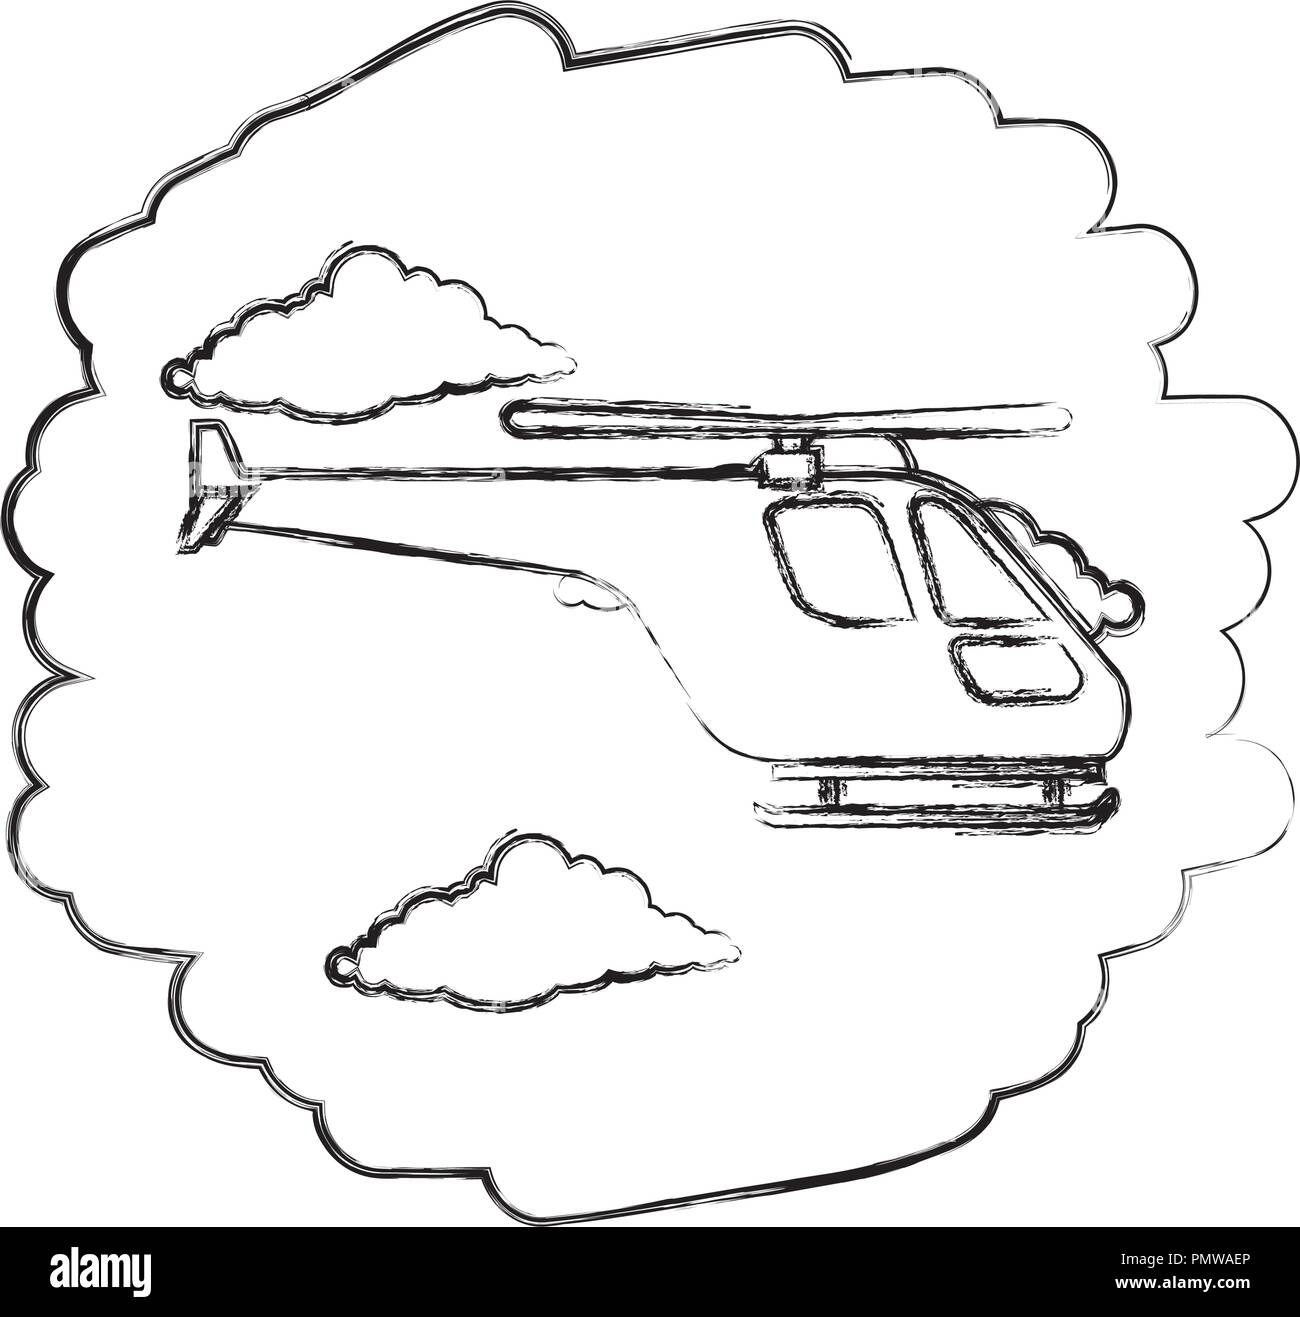 helicopter flying on the sky - Stock Image